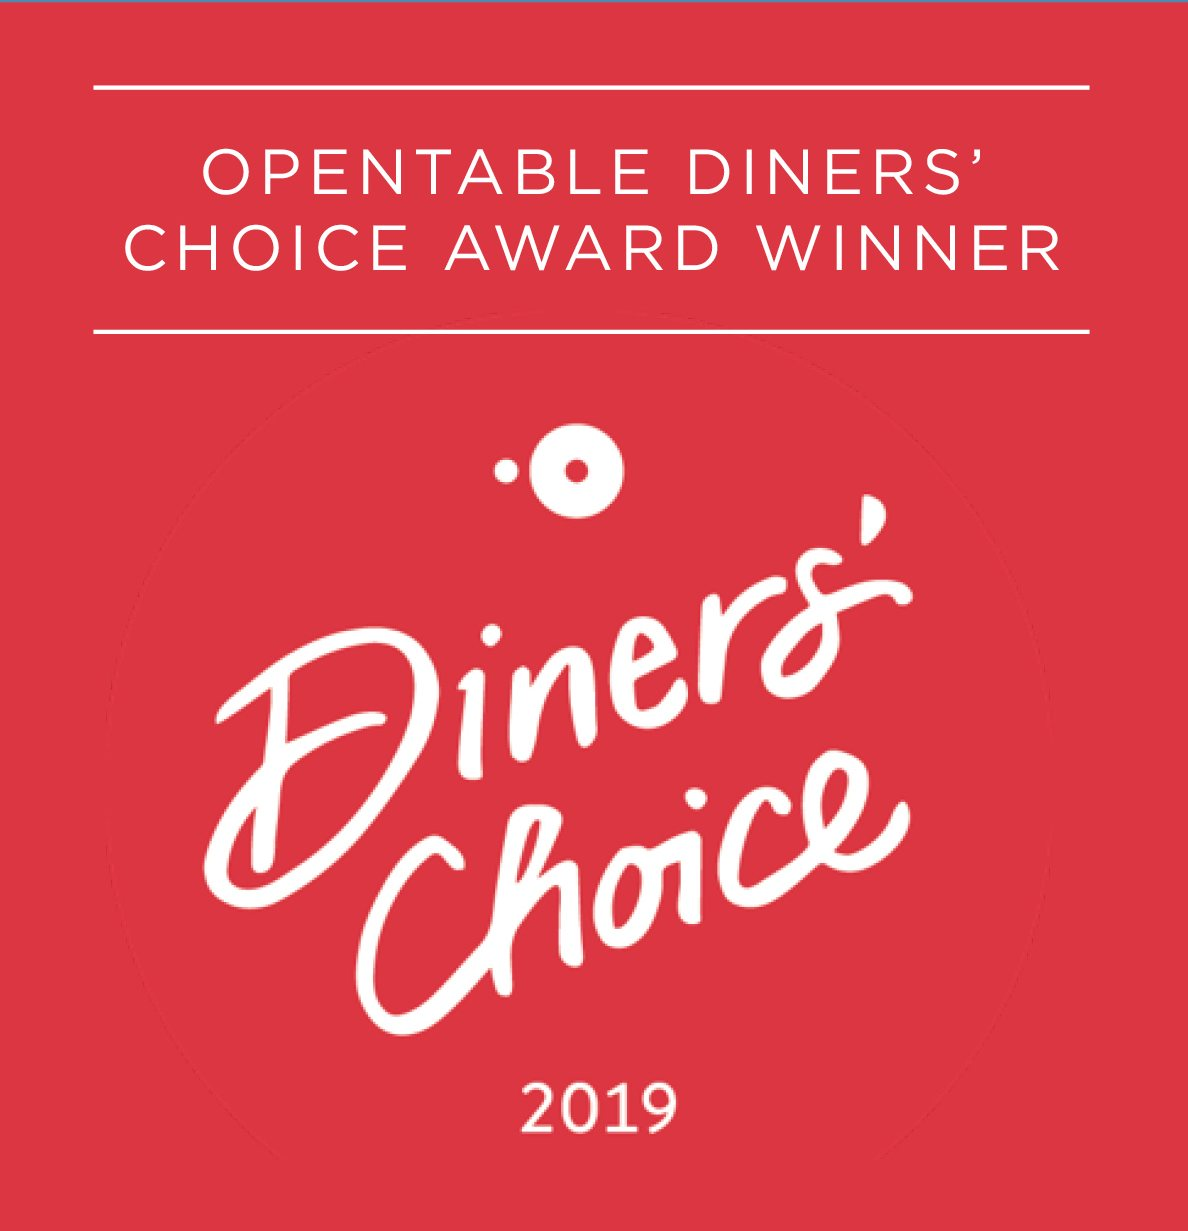 Opentable Diner's Choice Award Winner 2019